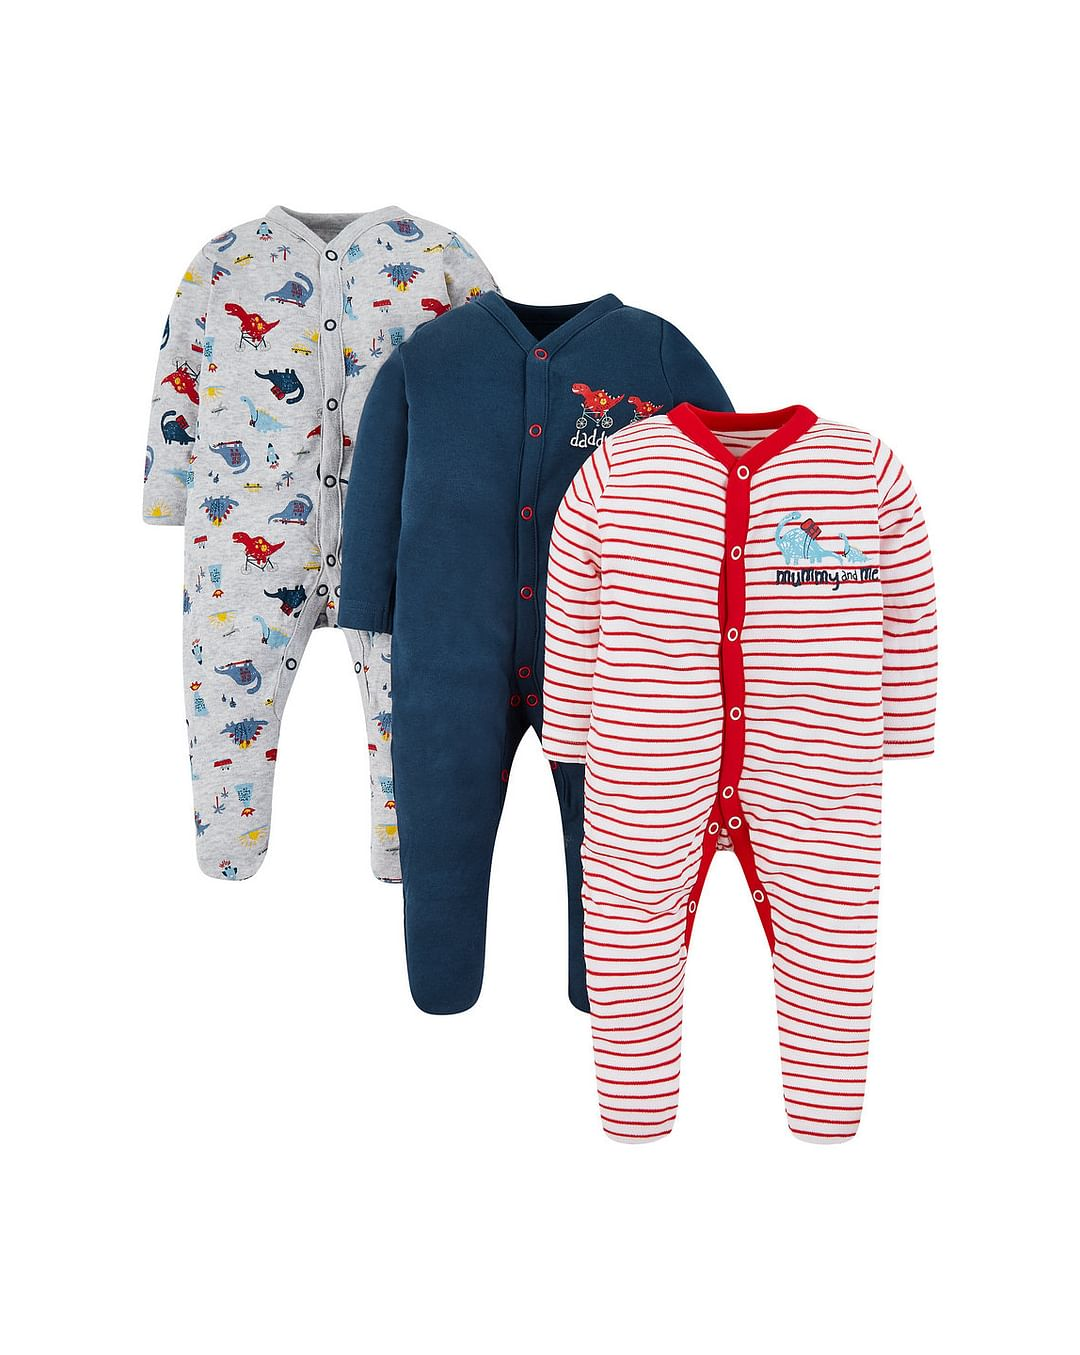 Mothercare | Red, Grey and Blue Printed Romper - Pack of 3